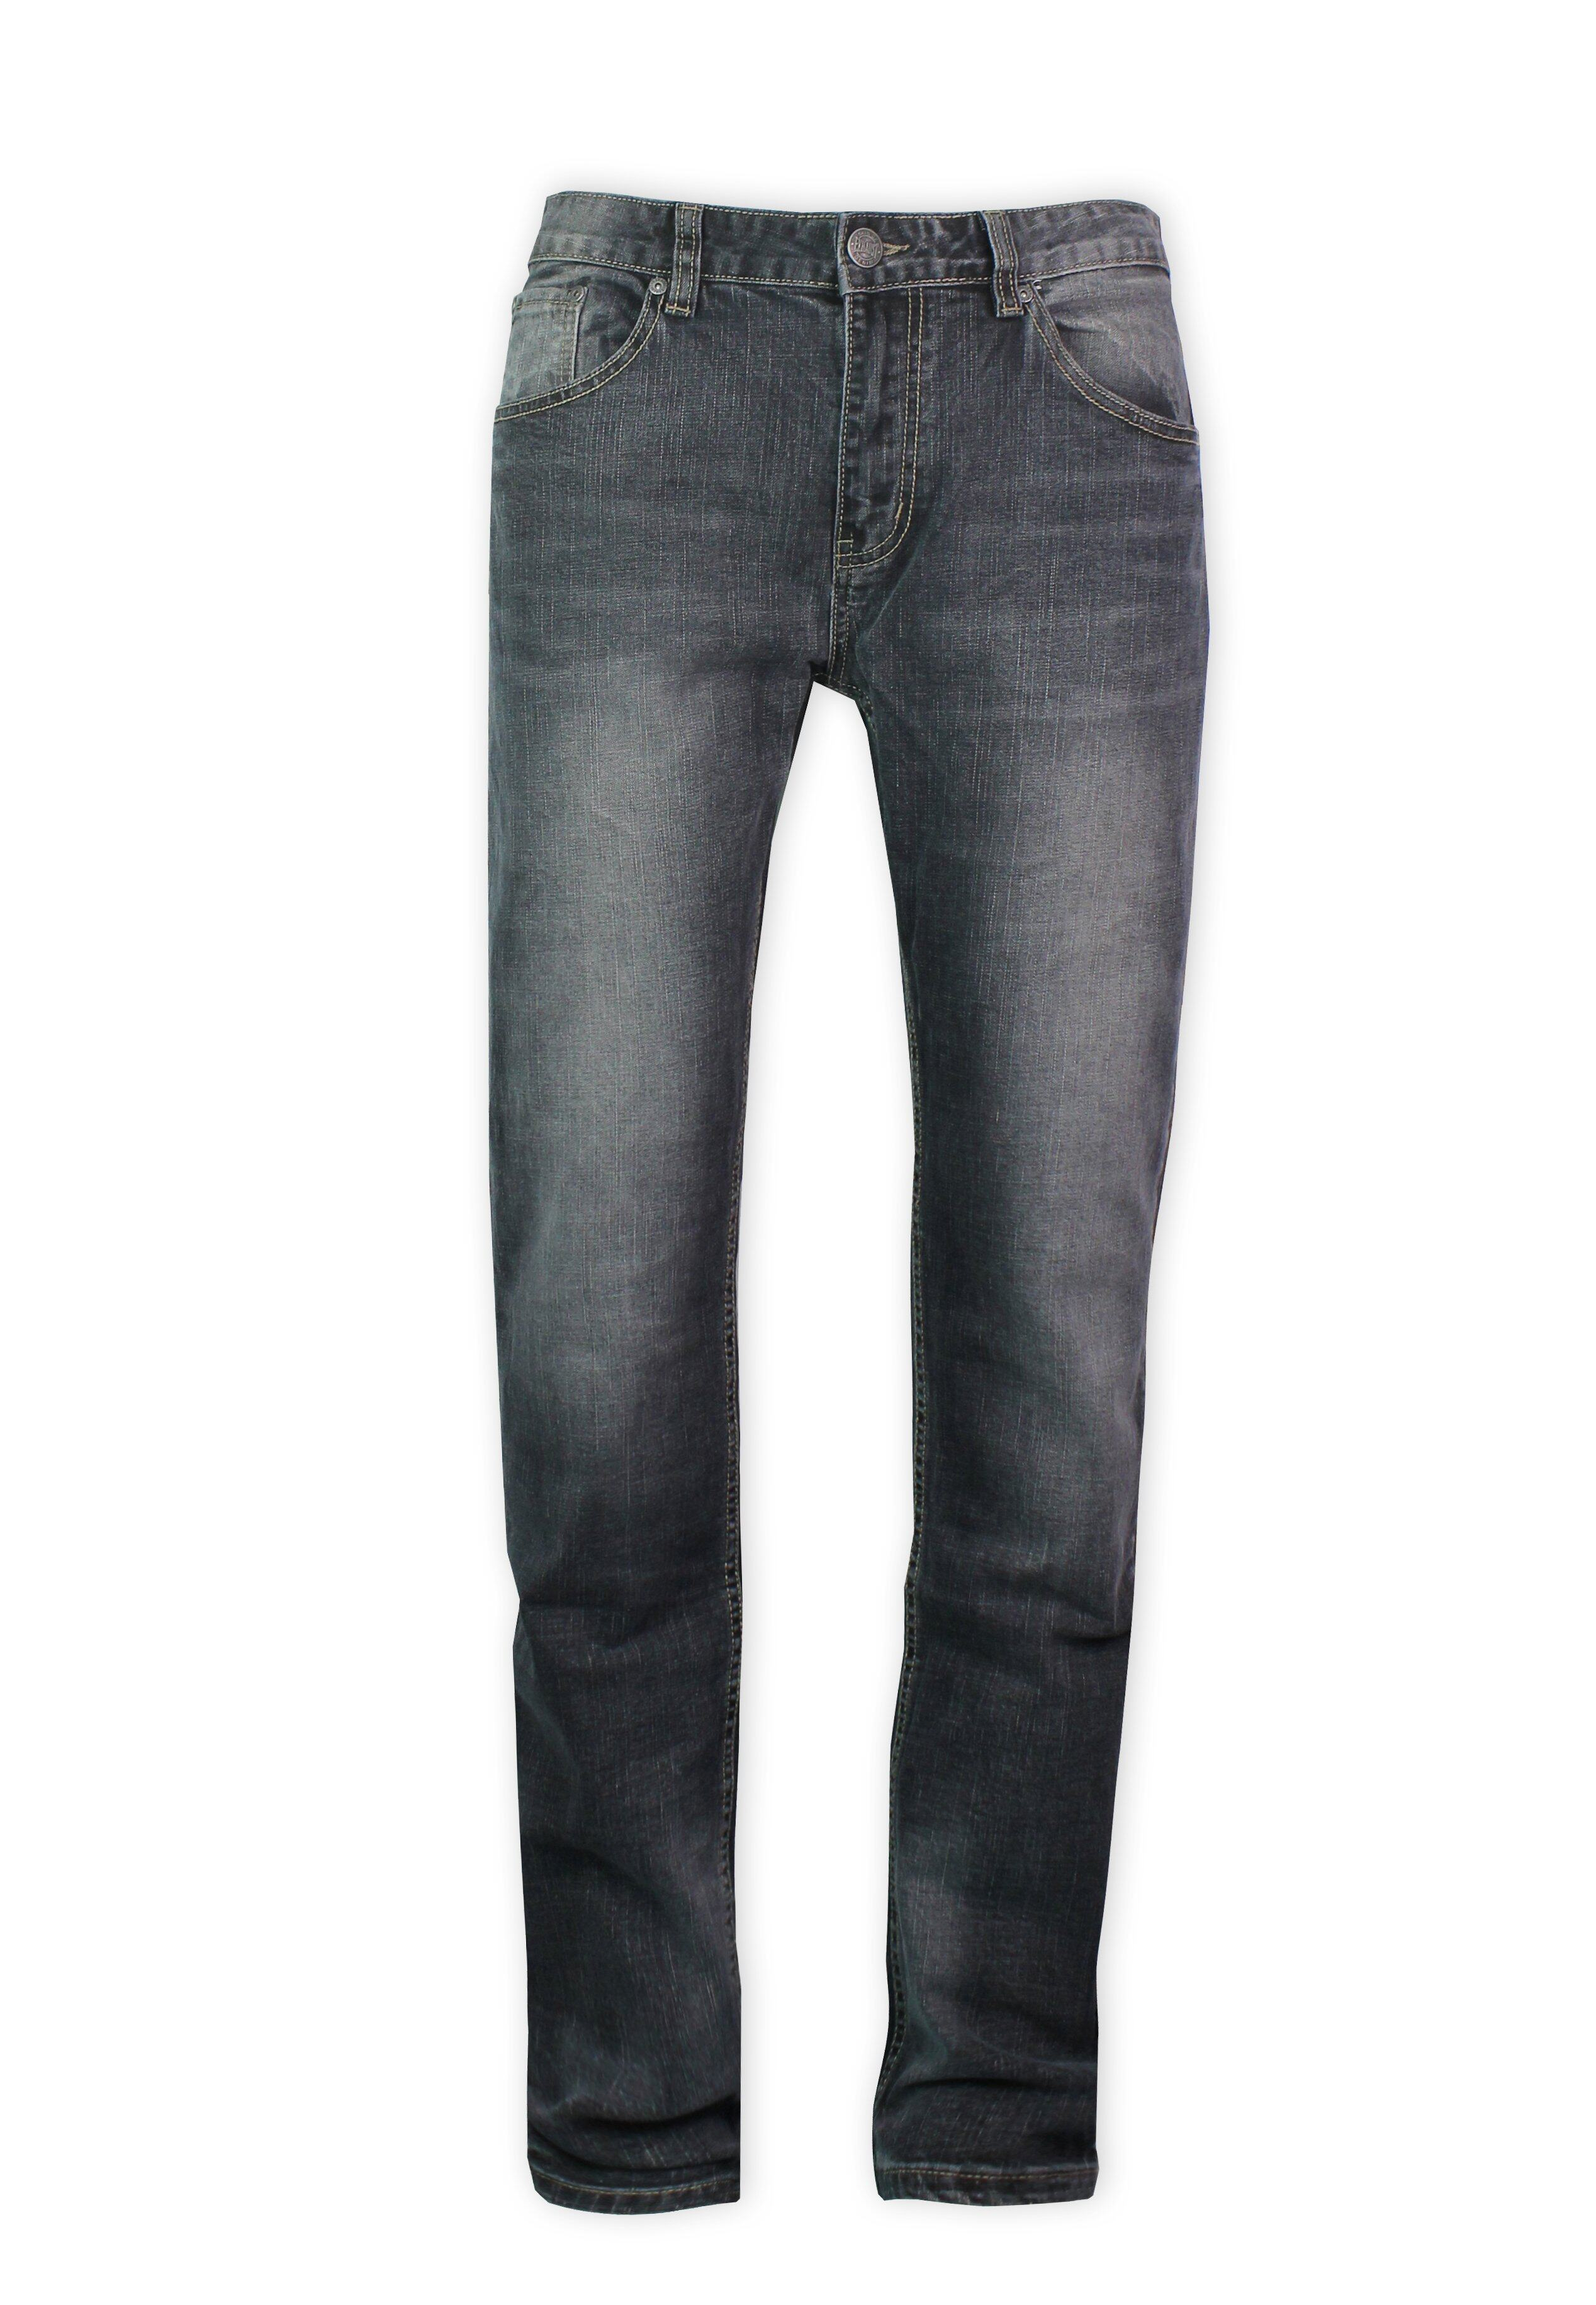 Exhaust Stretch Slim Fit Jeans 990